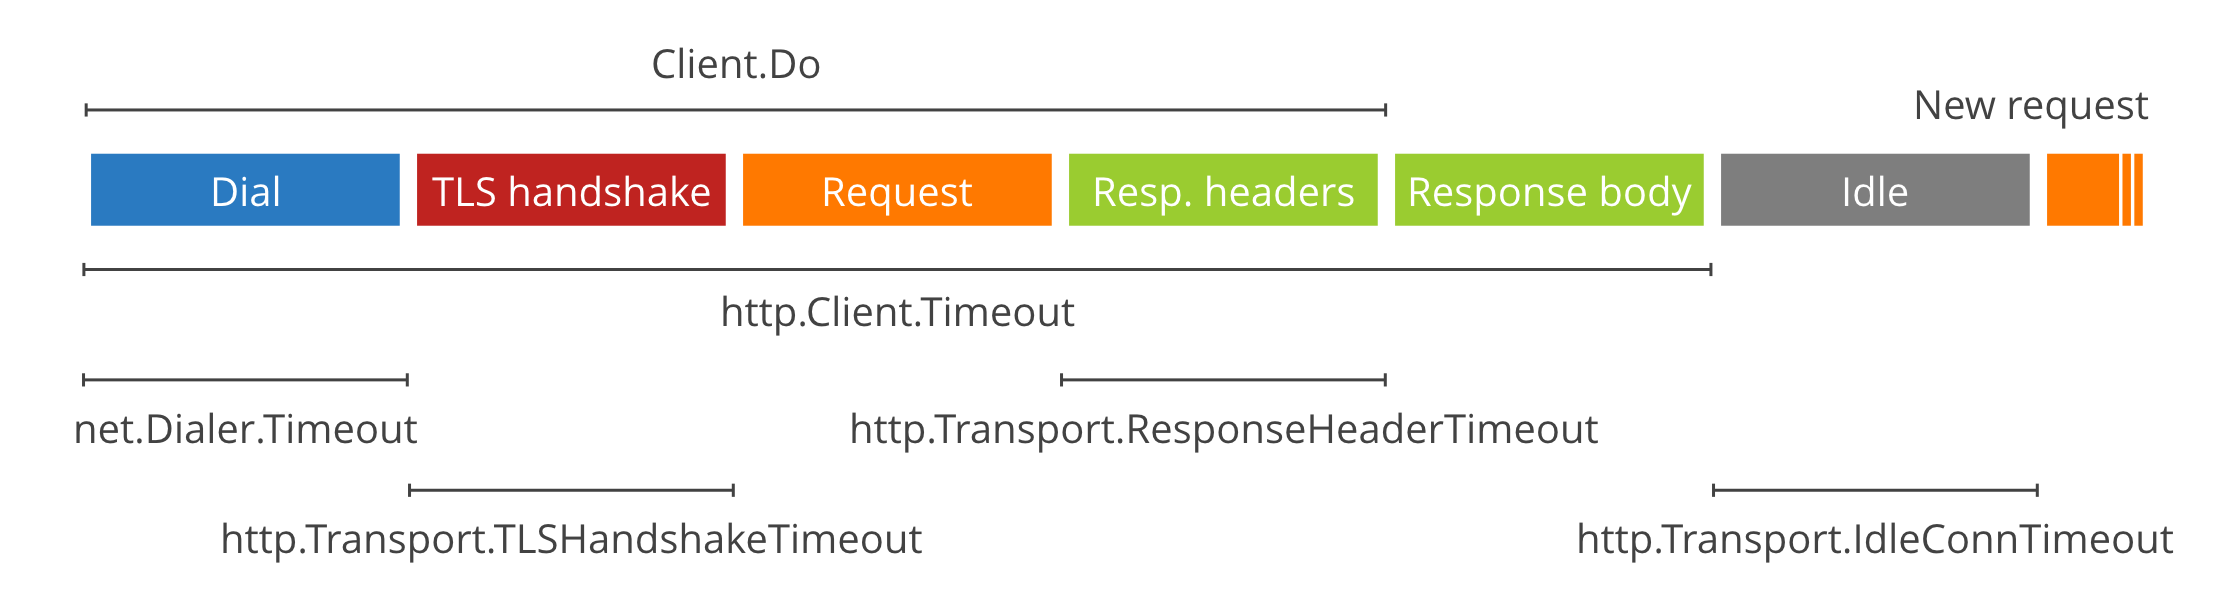 net/http.Client timeout infographic